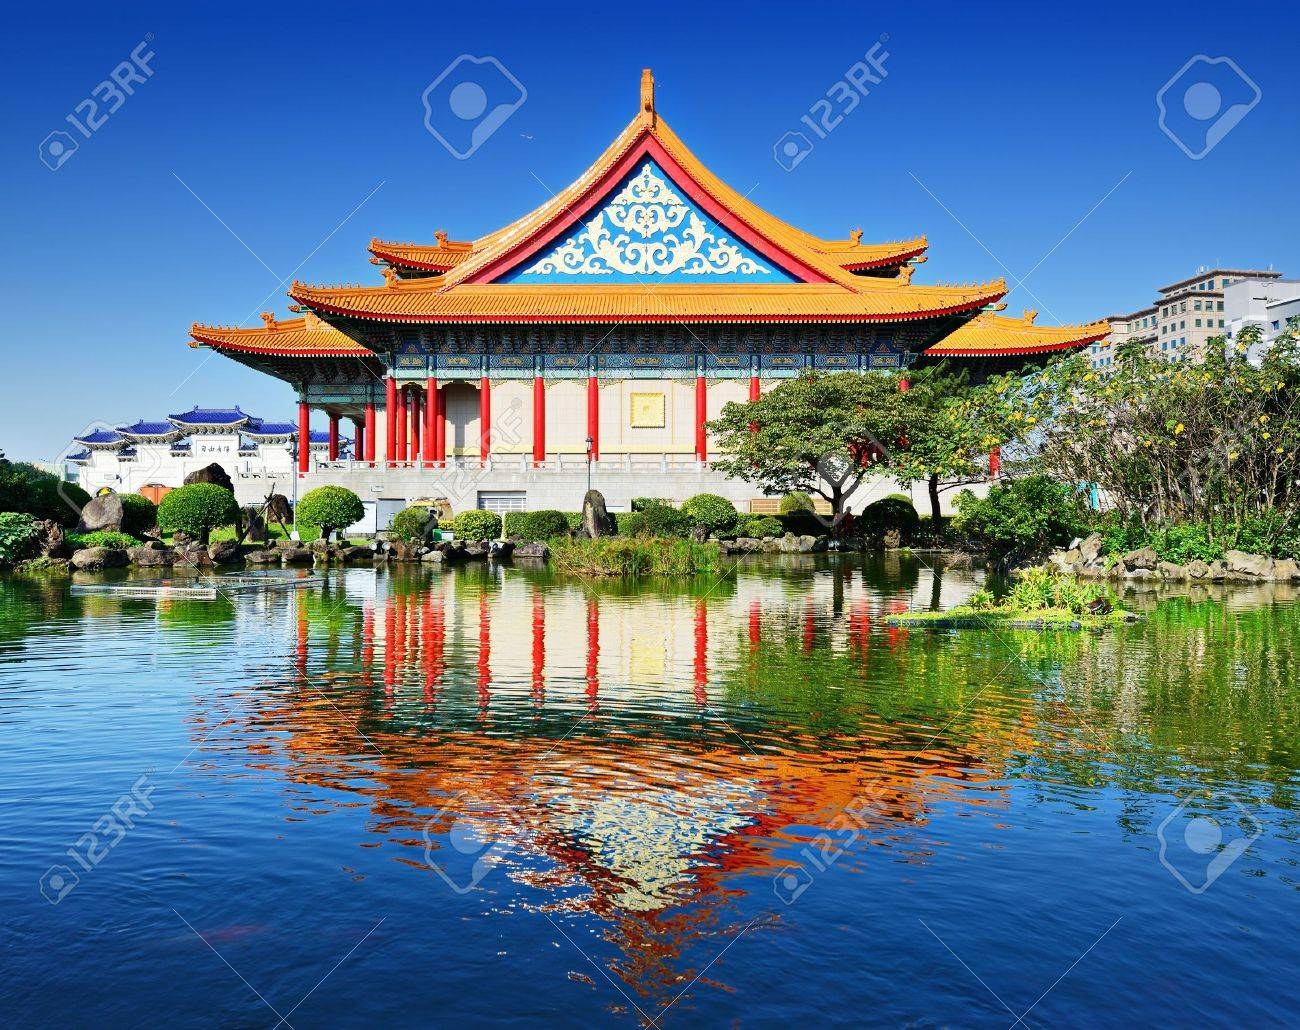 National Concert Hall of Taiwan in Freedom Square, Taipei, Taiwan. Stock Photo - 21367937